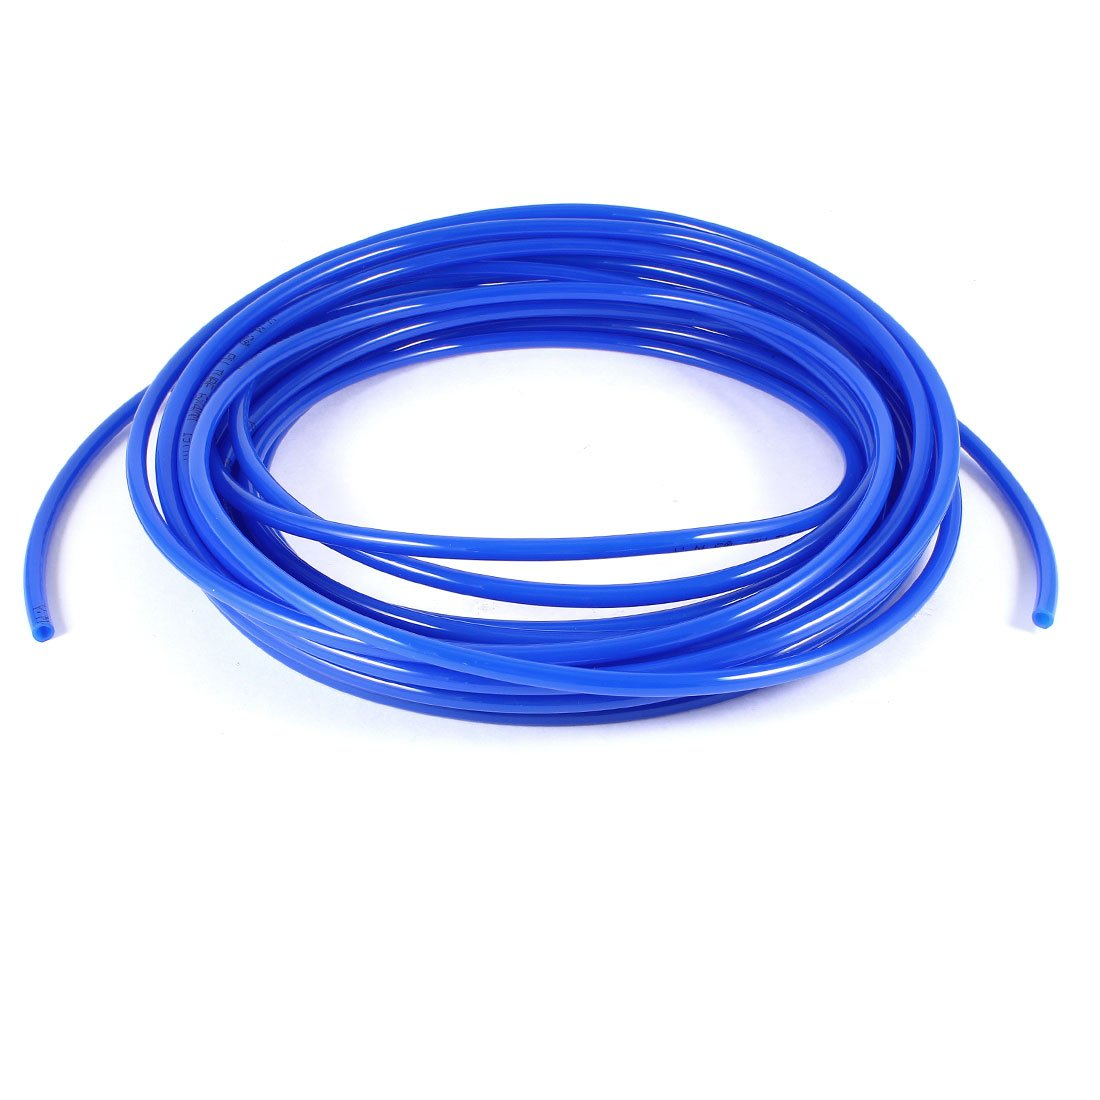 Uxcell a12022700ux0184 10M 32.8Ft 6mm x 4mm Pneumatic Polyurethane PU Hose Tube Pipe Blue